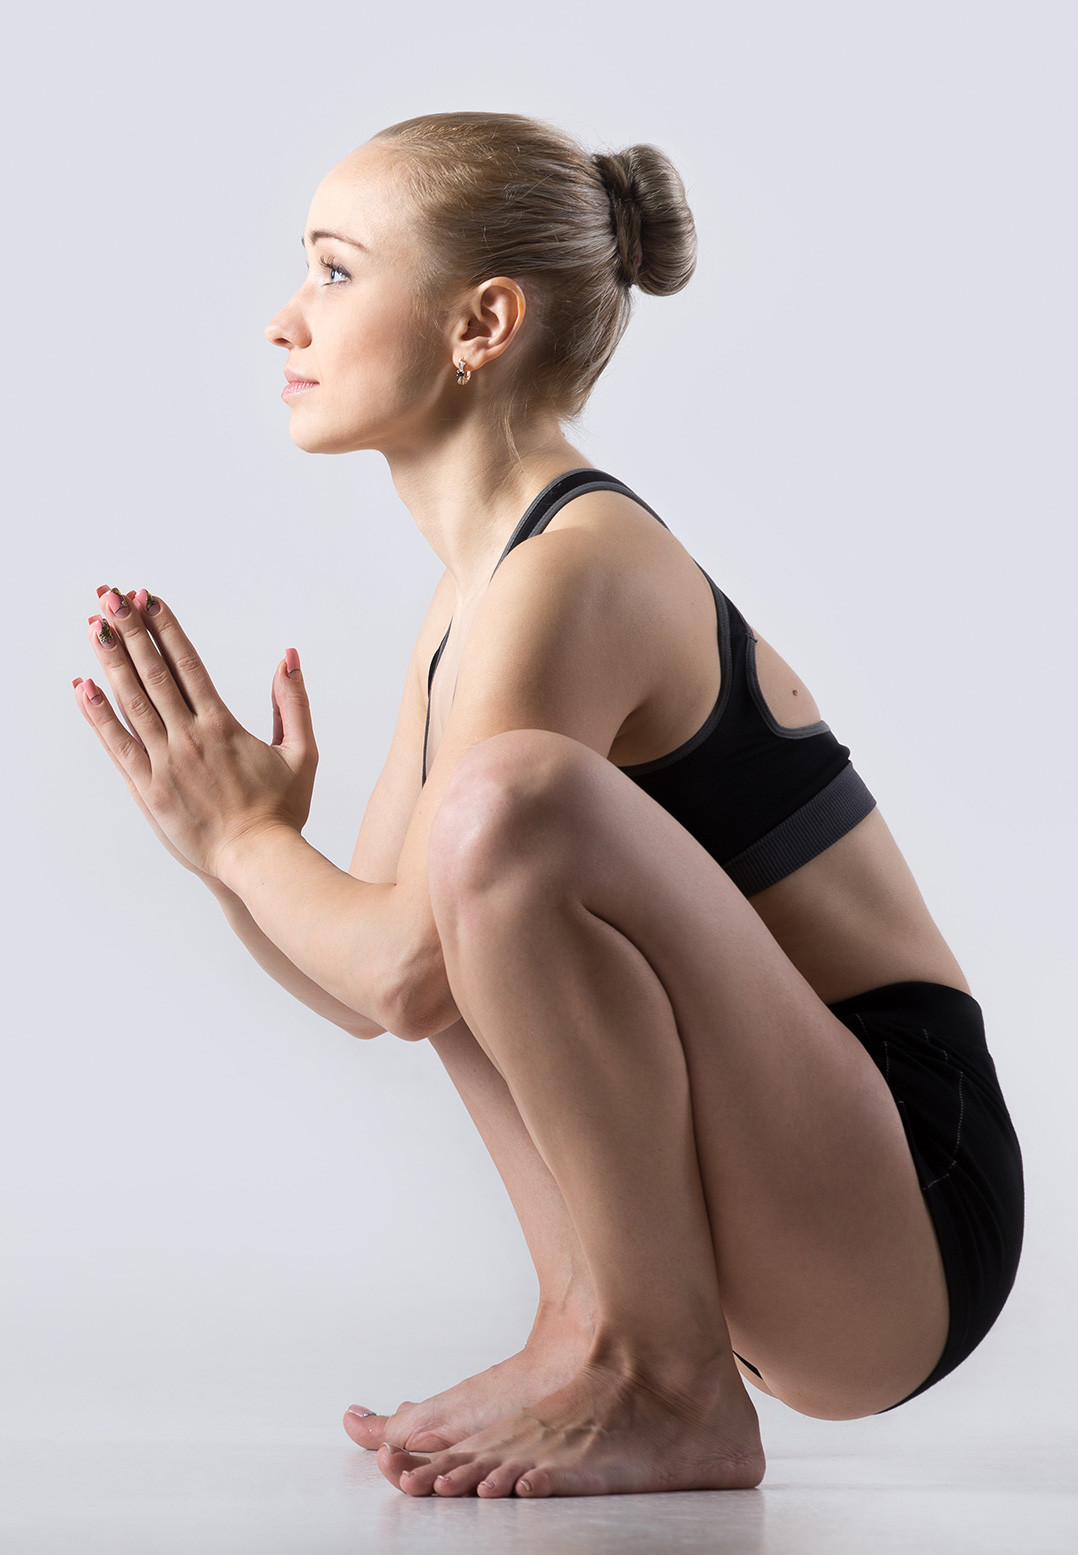 A side profile pic of a young woman sitting in a natural flat-footed squat position